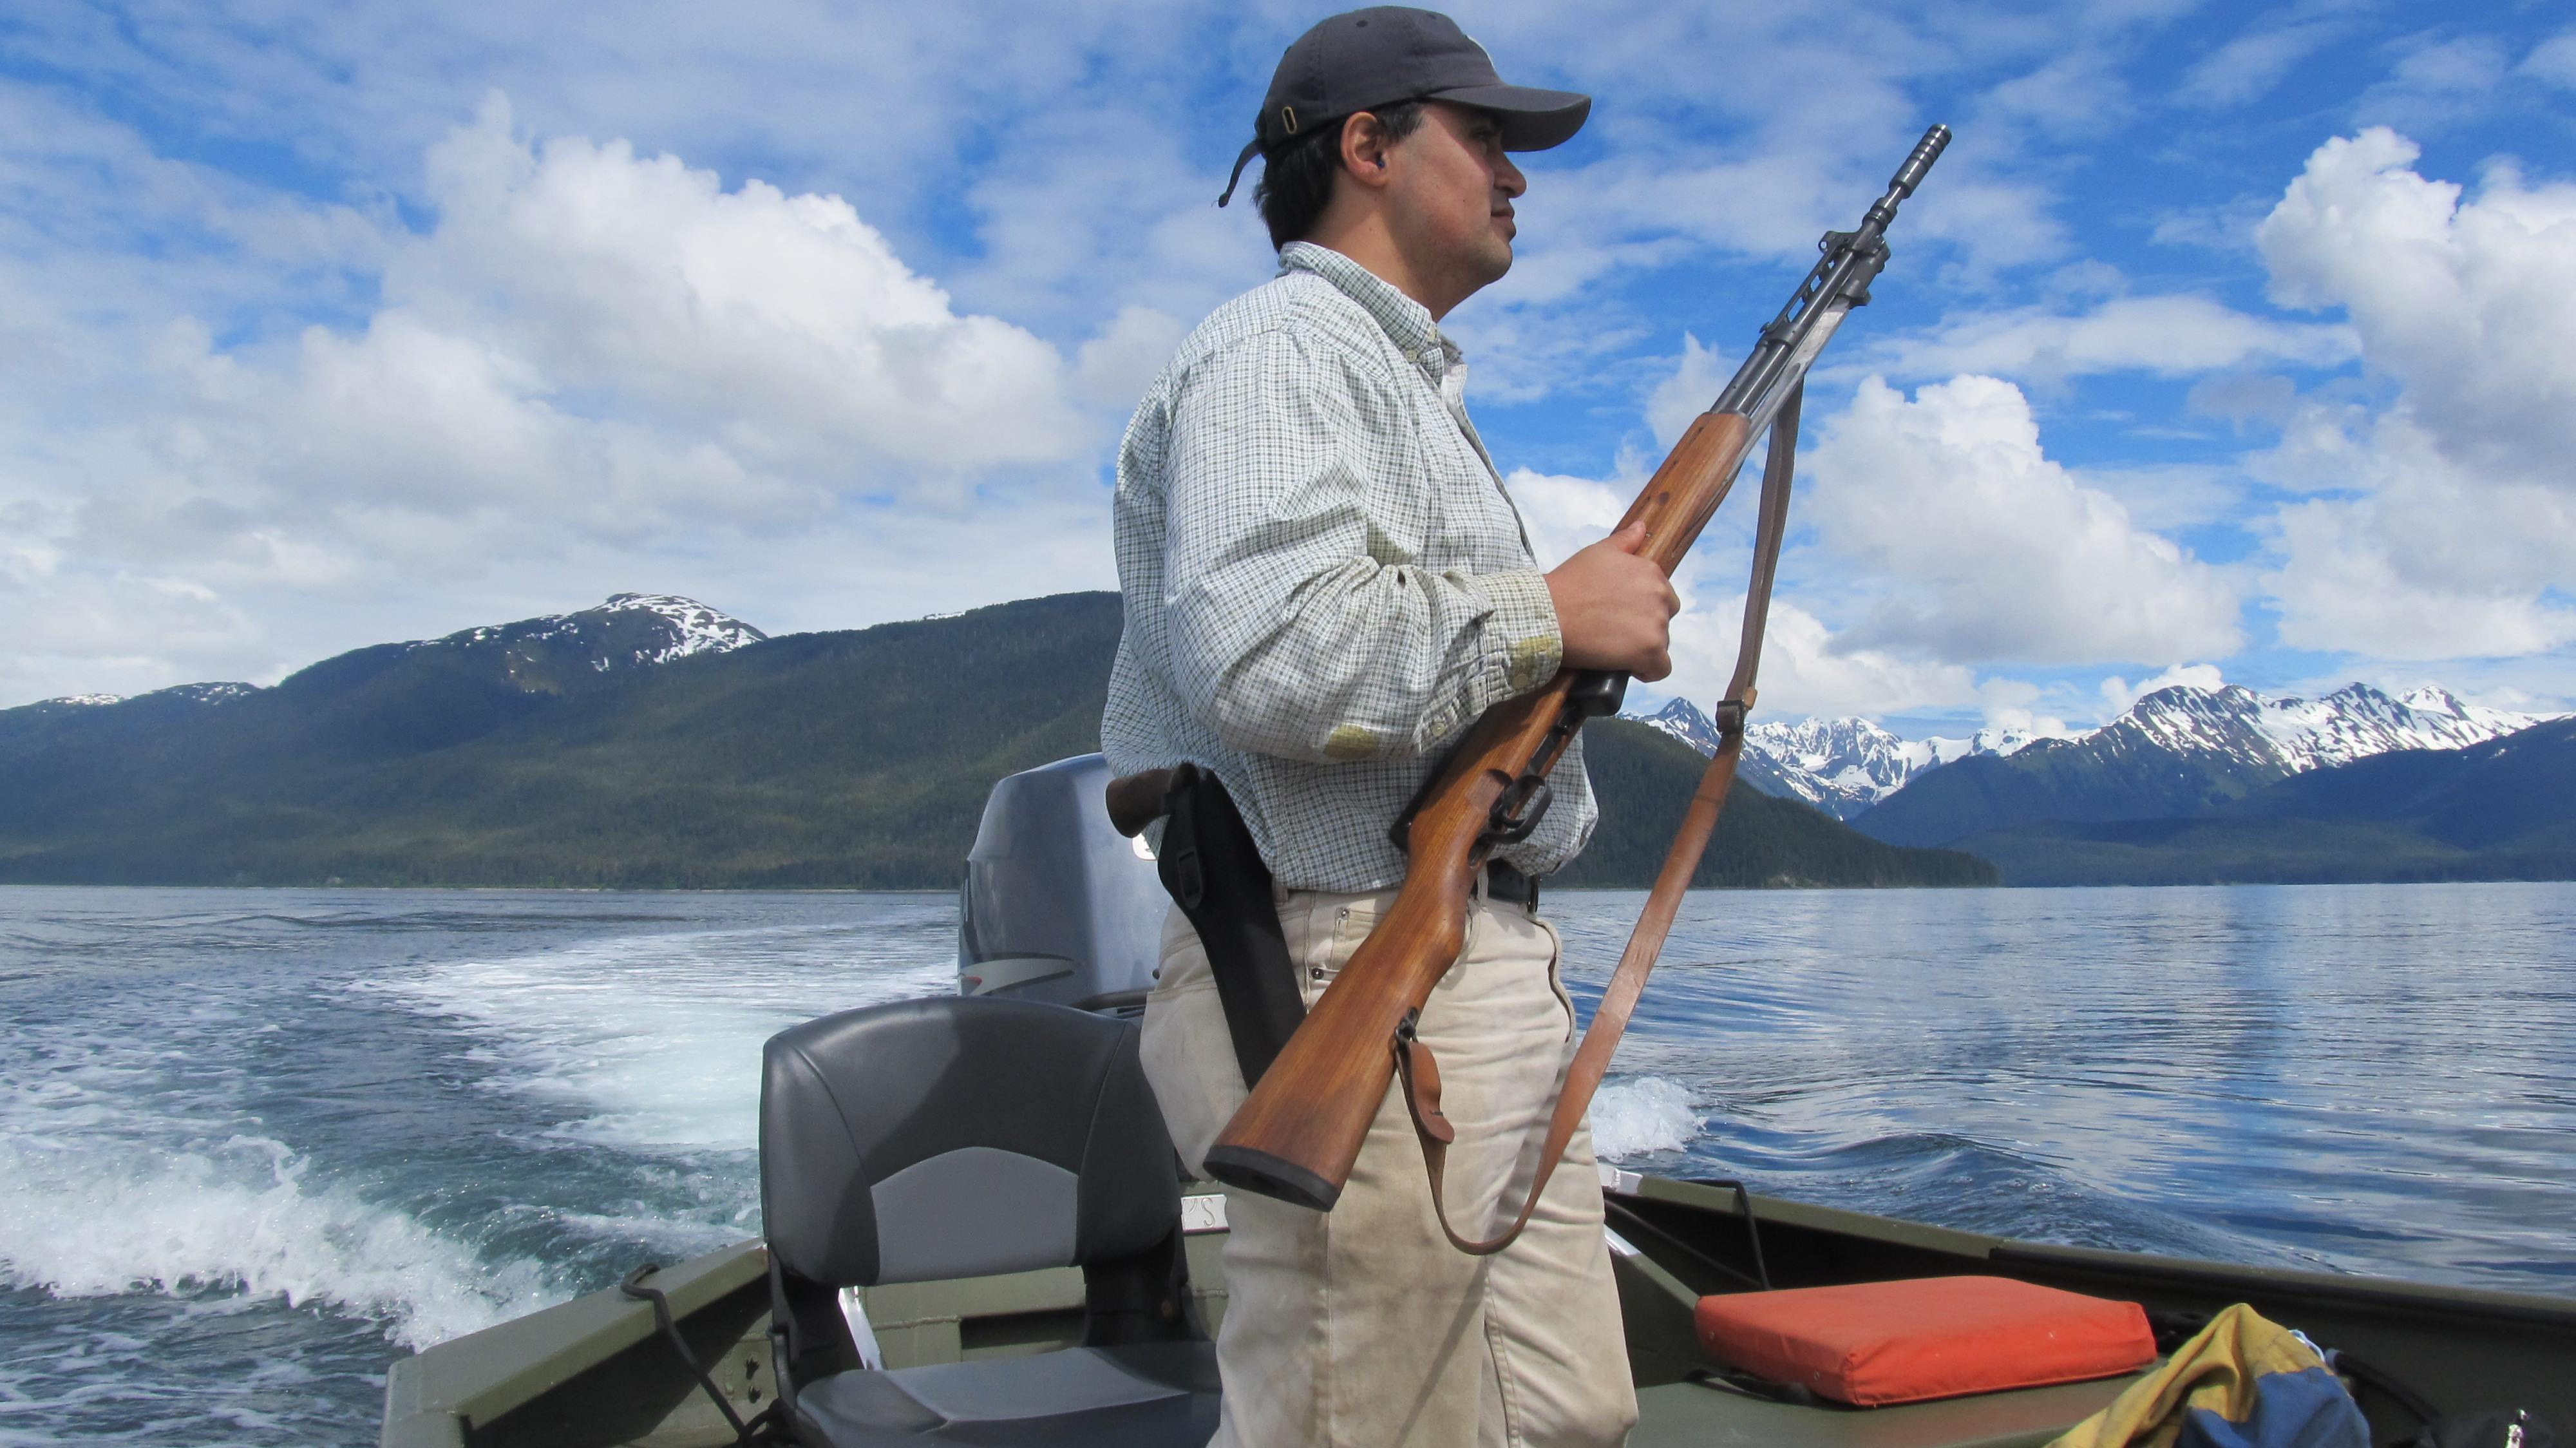 Marcus Gho hunts for sea otters on June 8, 2013, near Pleasant Island in Icy Strait. Gho, who is Inupiaq Eskimo, lives in Juneau and creates items using sea otter fur. (Photo courtesy Marcus Gho)